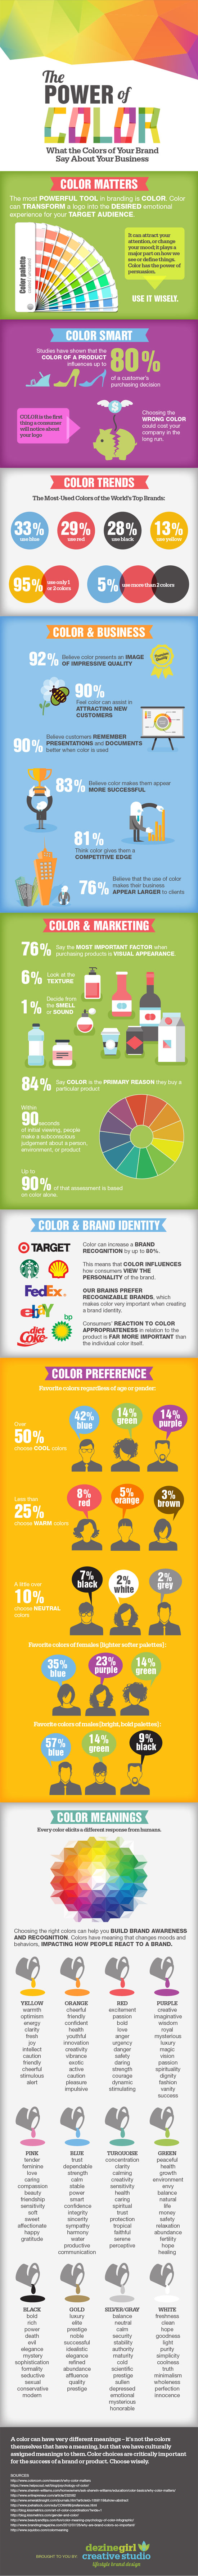 The Power of Color in Brand